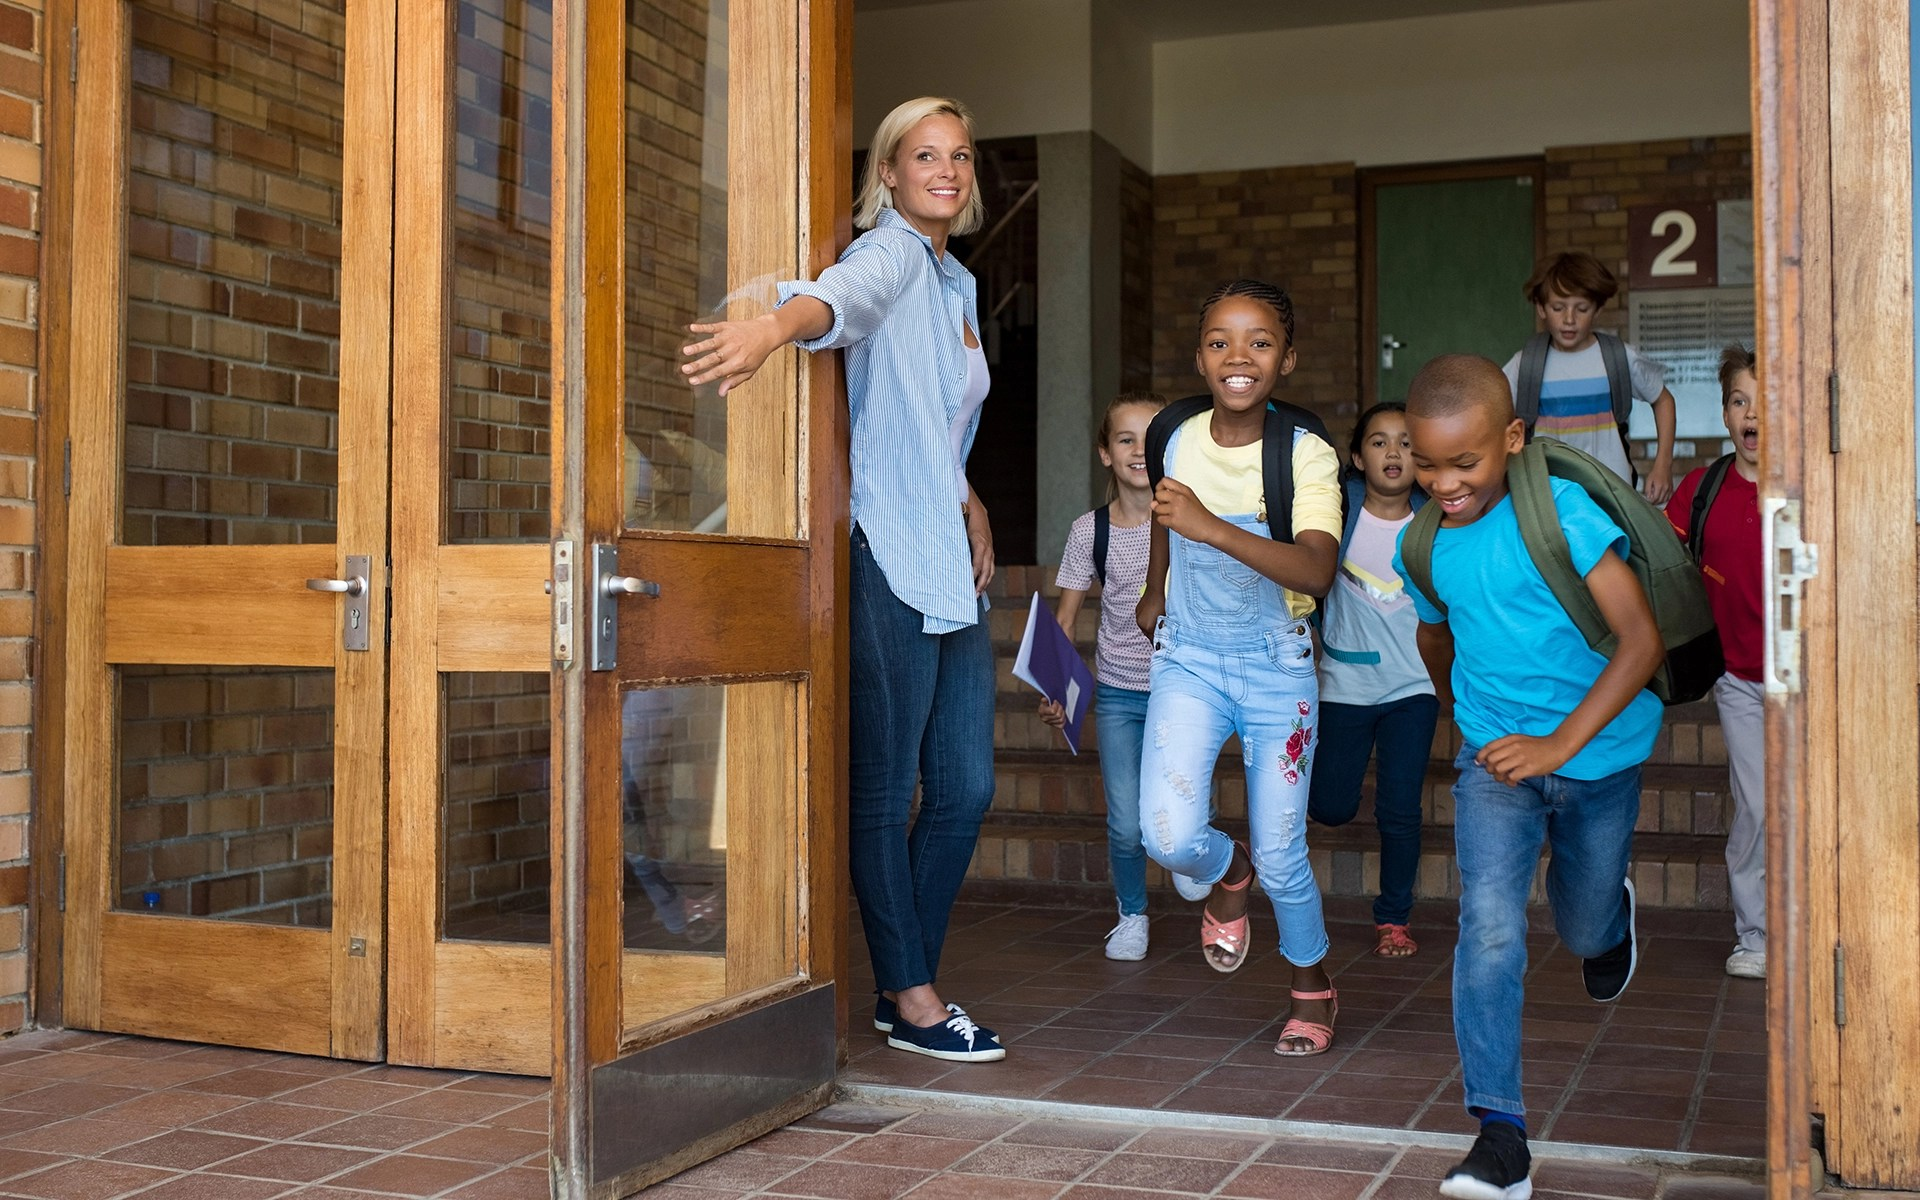 What Mindfulness Brings to an Elementary School Classroom - A teacher holds a classroom door open for students running outside